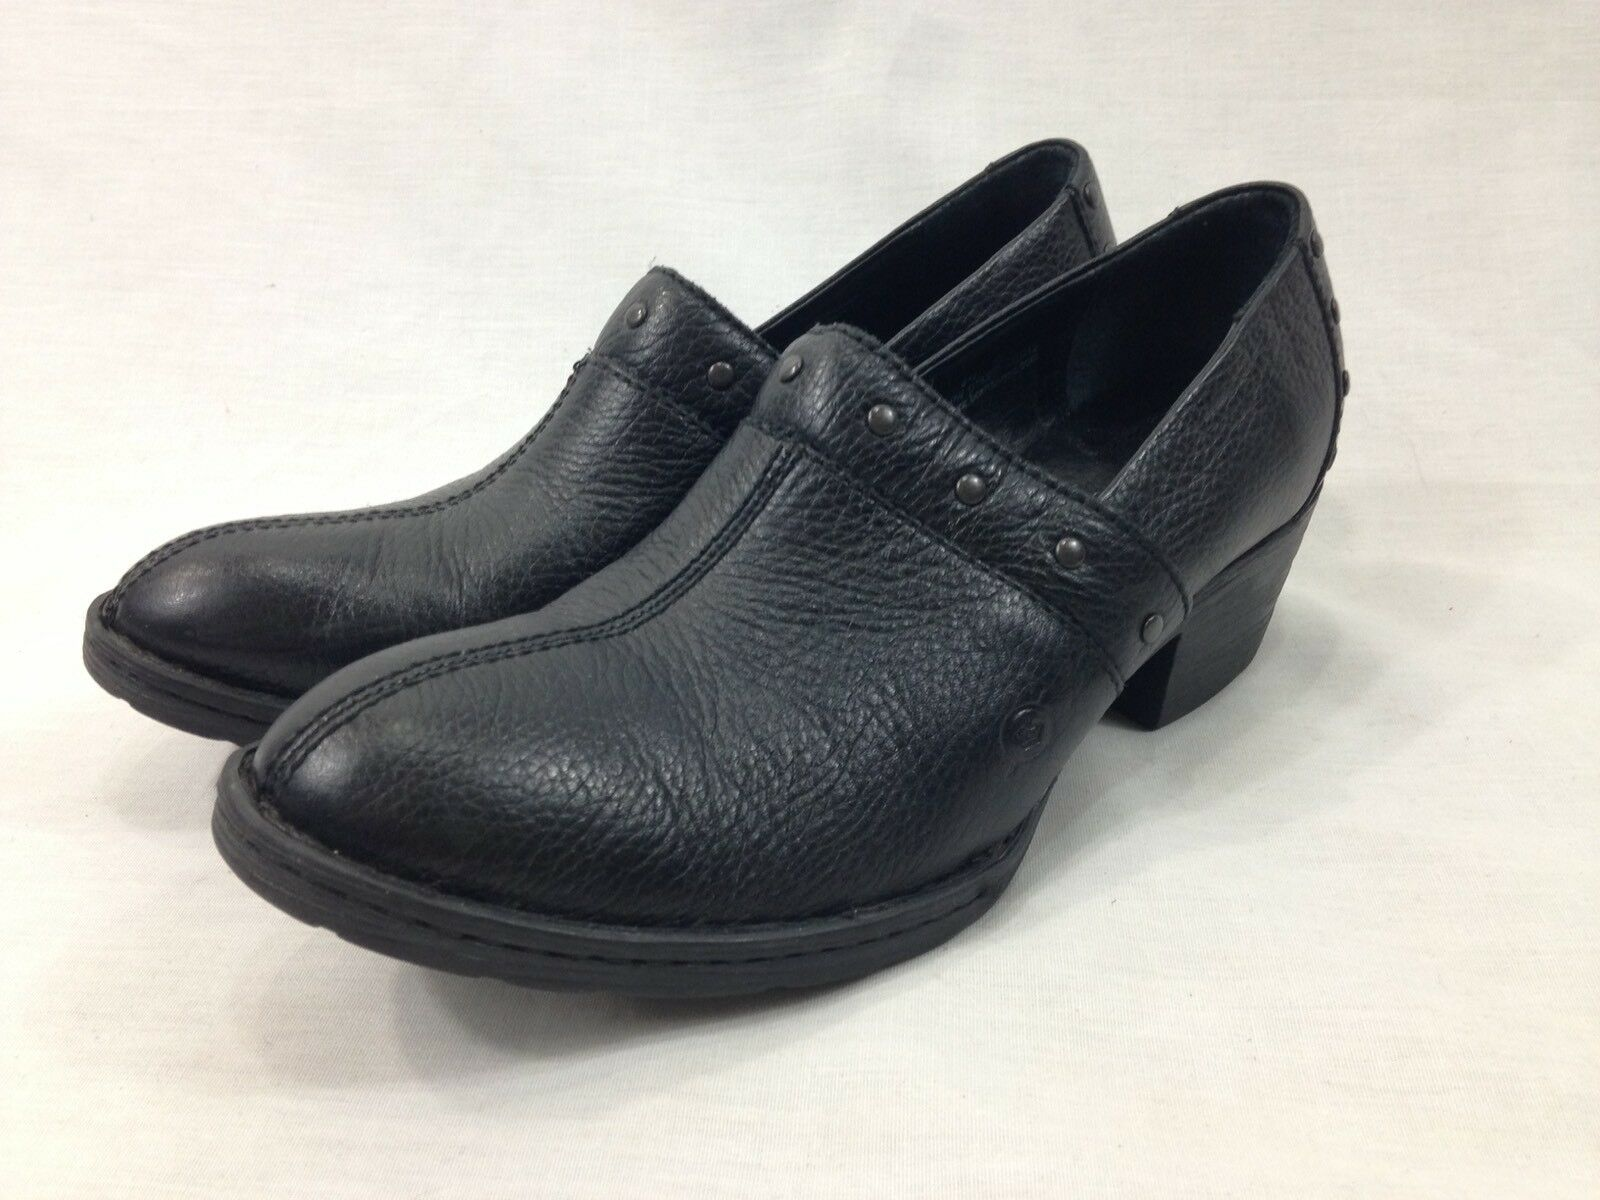 Born Handcrafted Footwear Shoes Womens 8.5 Leather Black Slip On 2'' Heel Clog